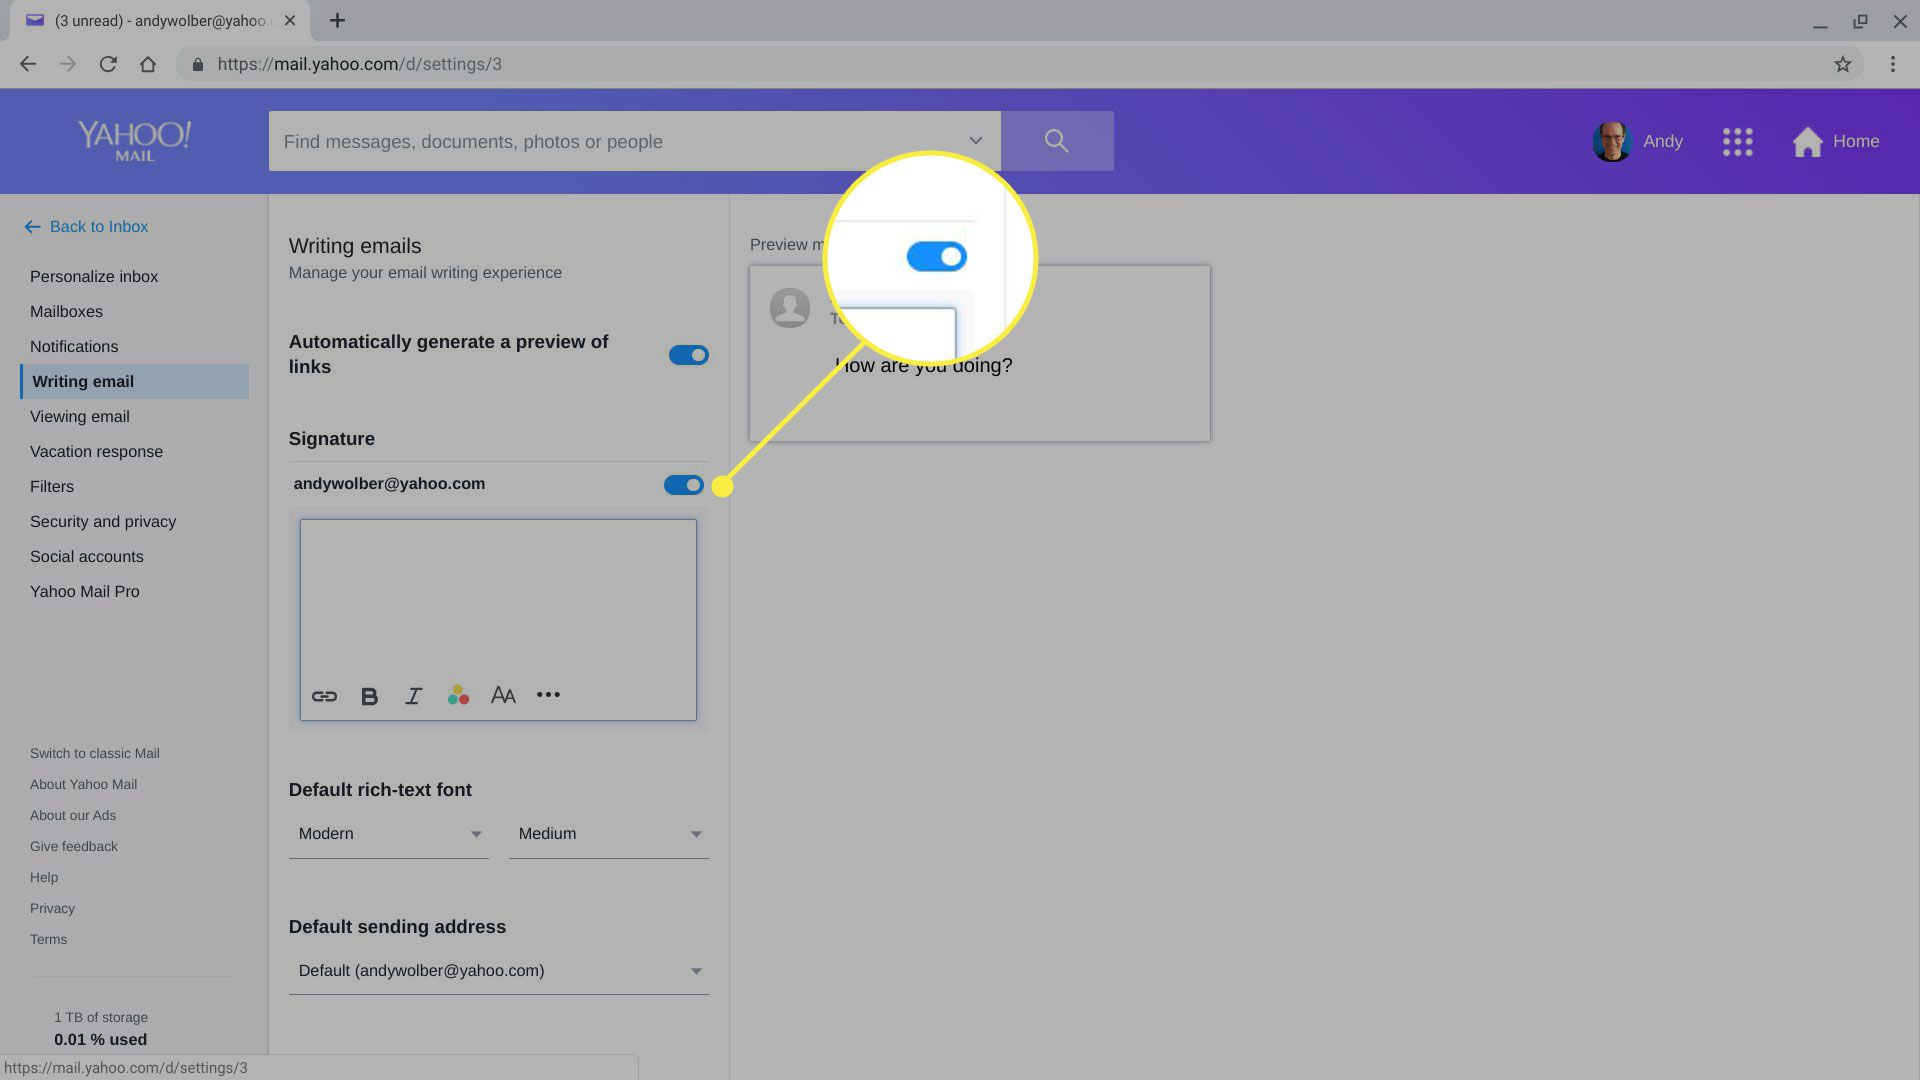 The Signature slider in Yahoo Mail